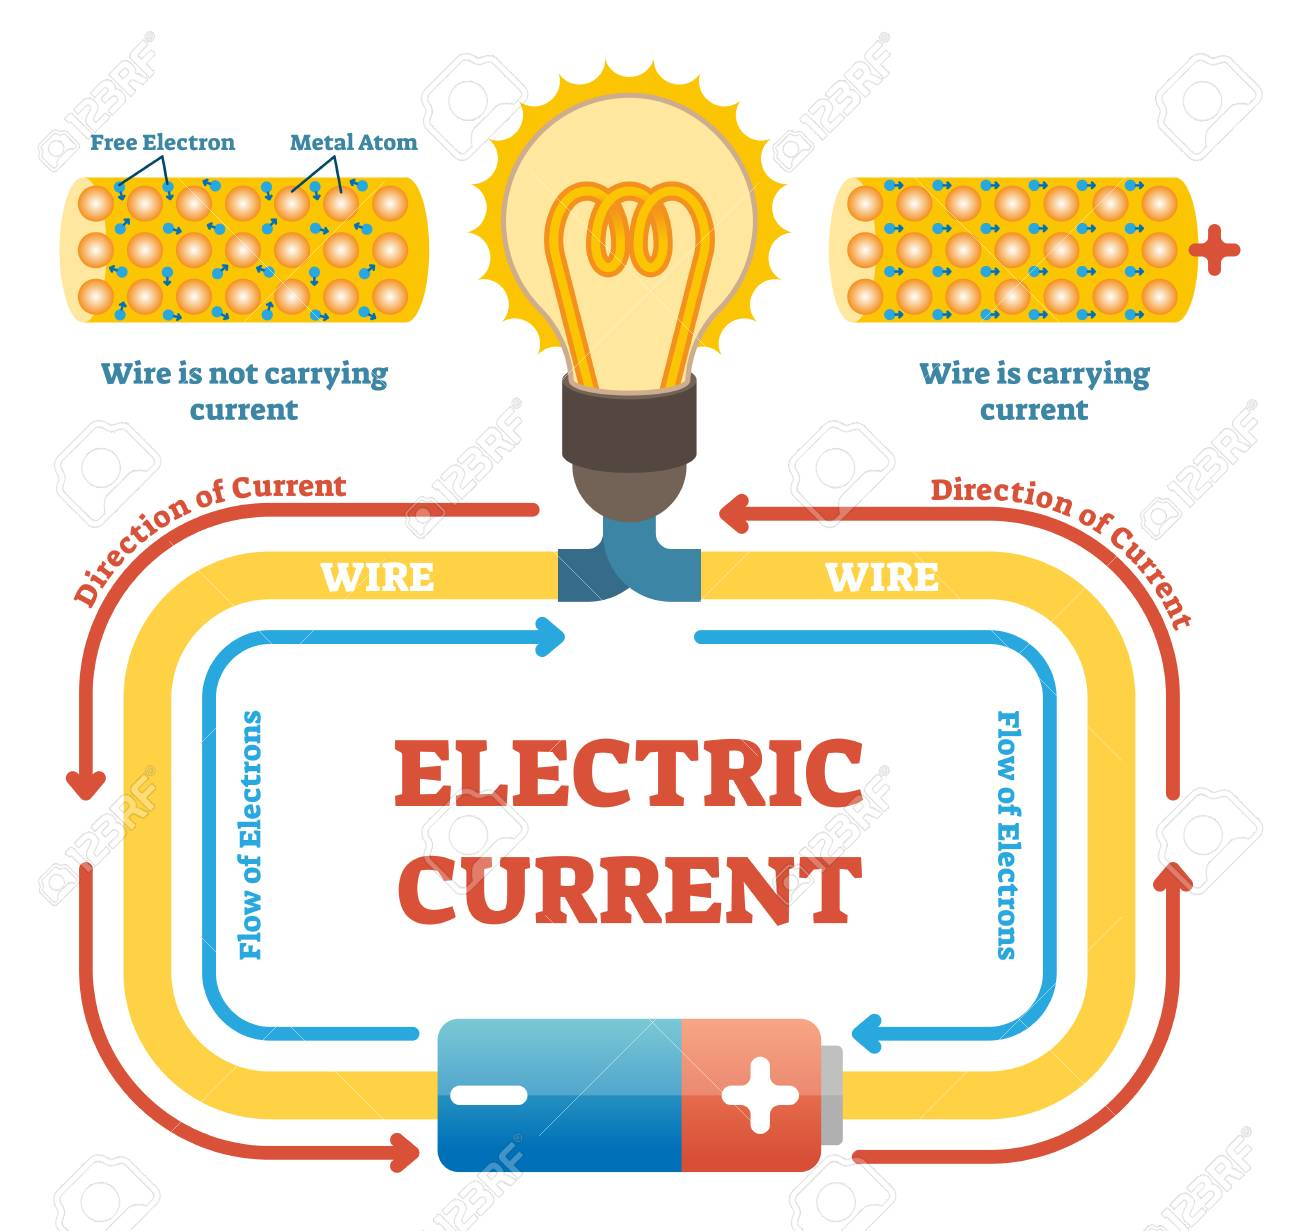 hight resolution of electric current concept example vector illustration electrical circuit diagram with light bulb and energy source